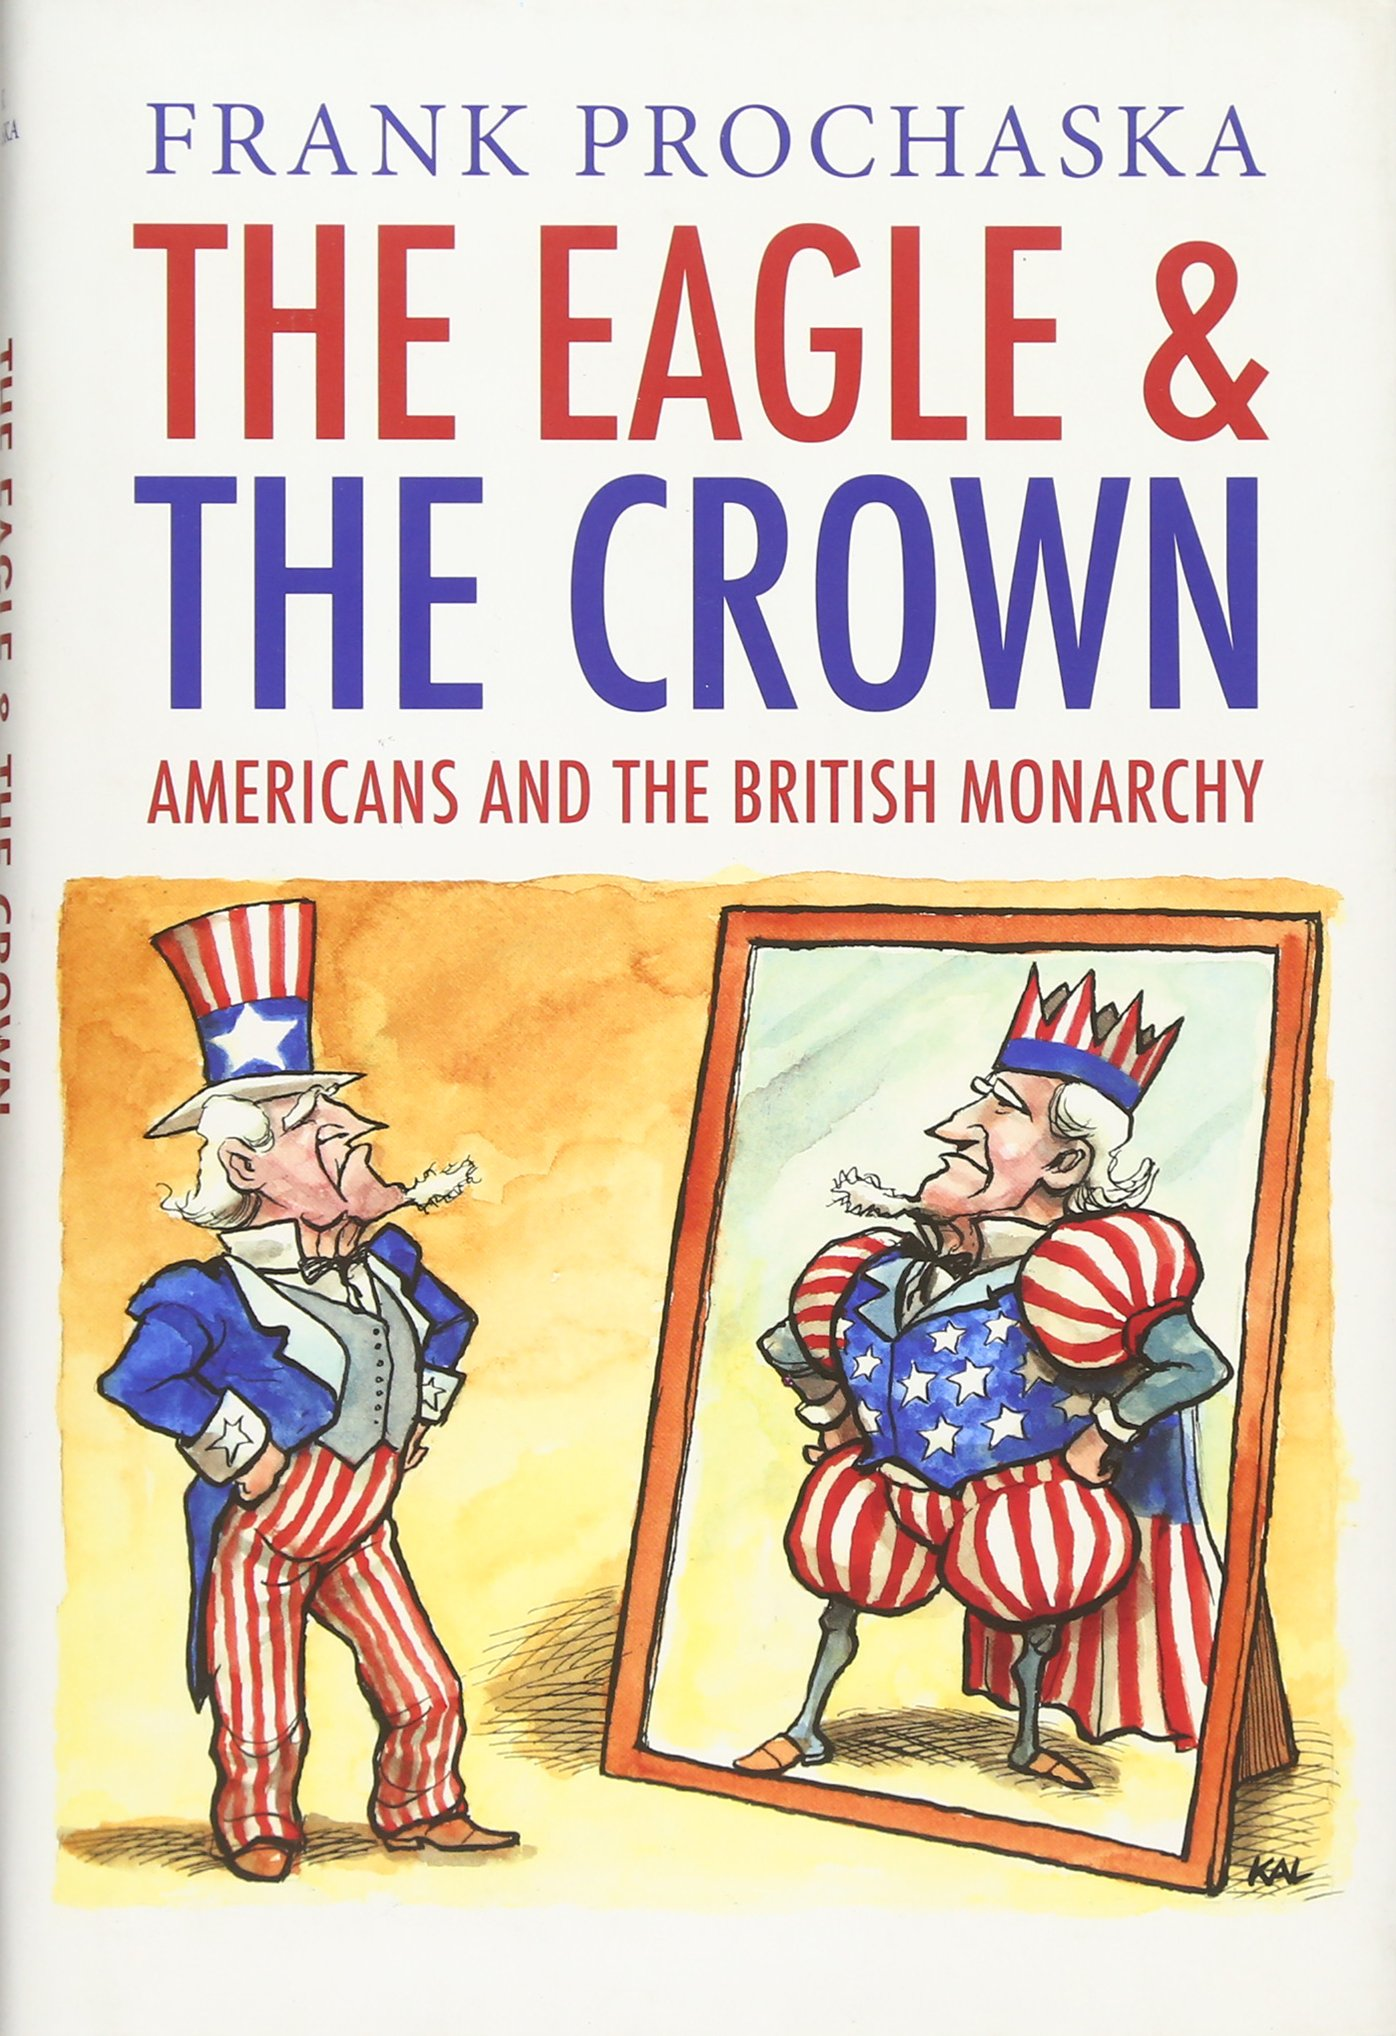 Buy The Eagle And The Crown Americans And The British Monarchy Book Online At Low Prices In India The Eagle And The Crown Americans And The British Monarchy Reviews Crown icon, crown material, royal crown, crown vector, cartoon png. amazon in